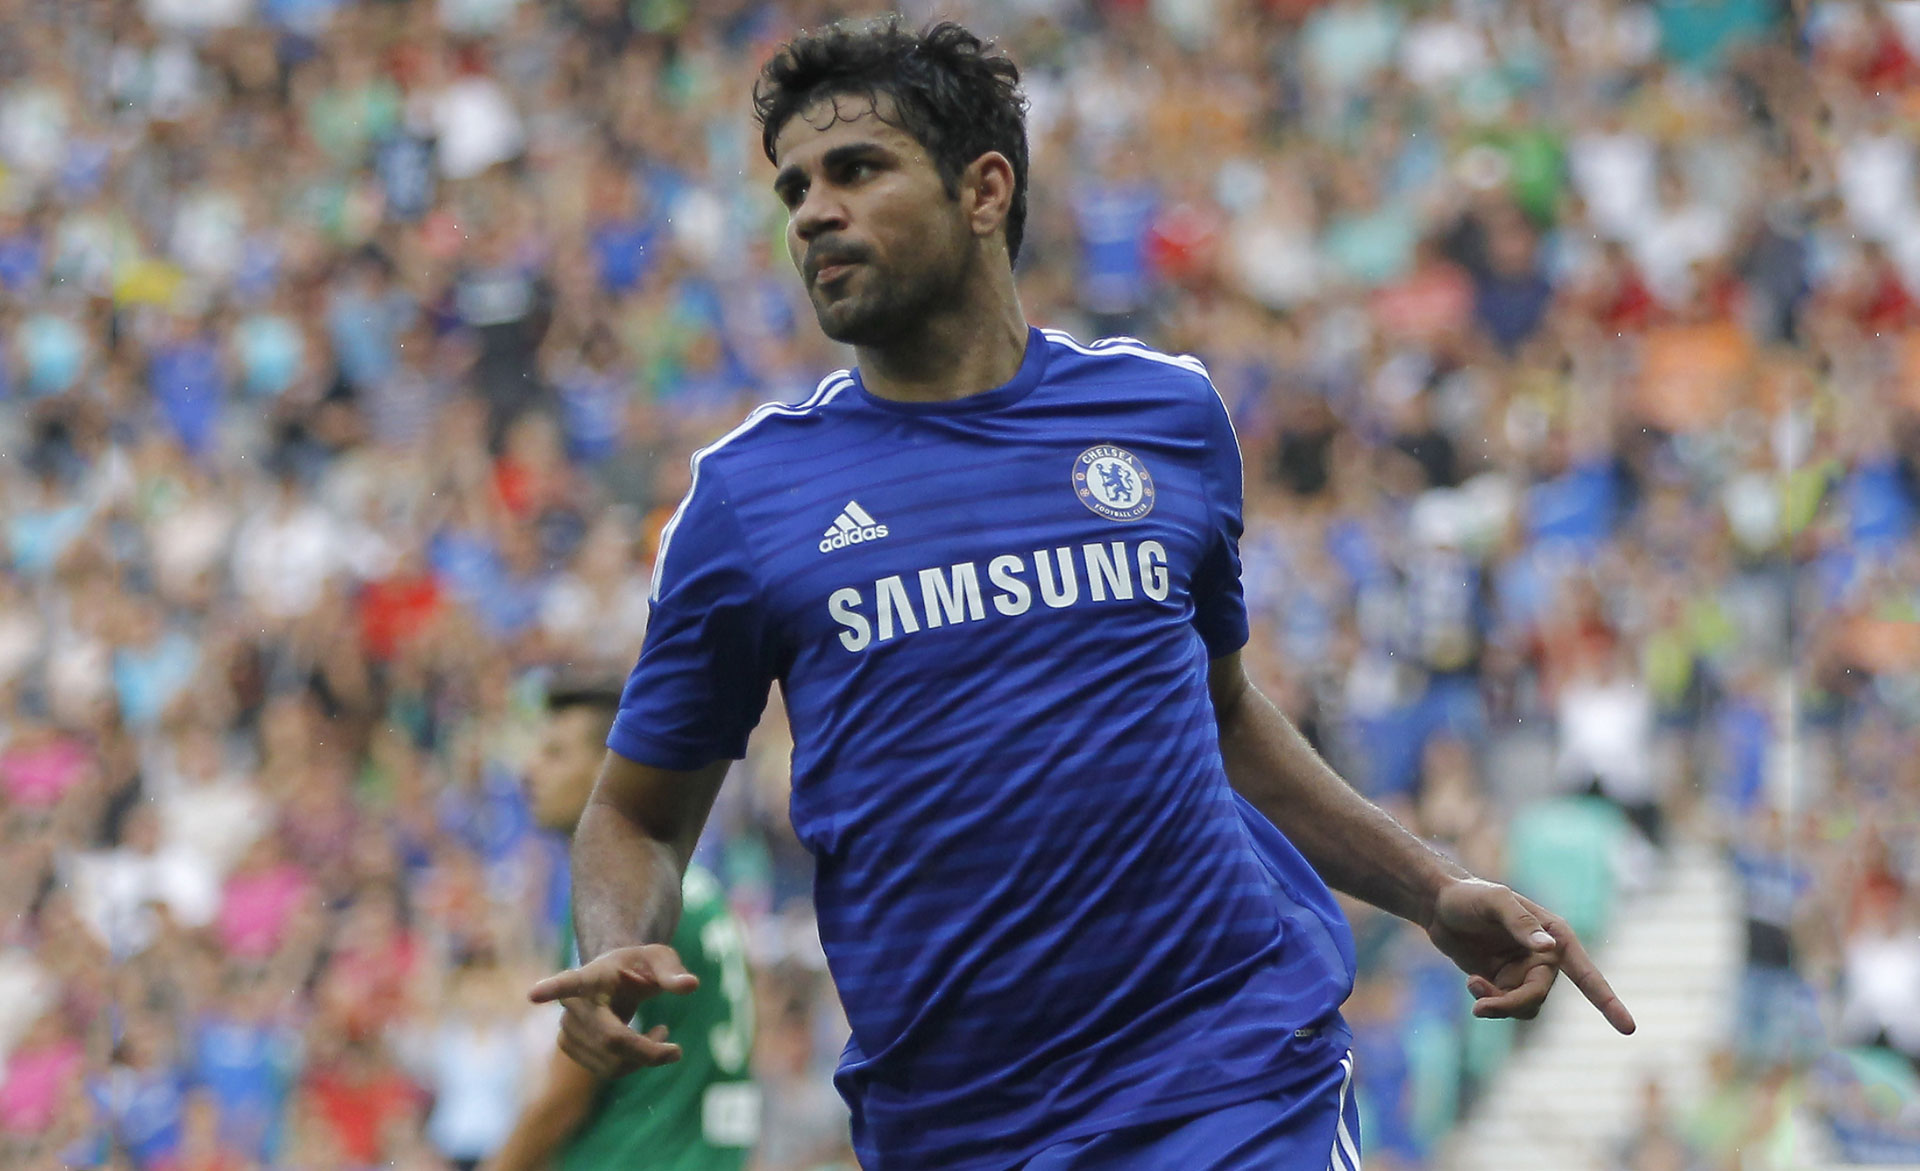 Diego Costa in Chelsea shirt 2014-2015 wallpaper